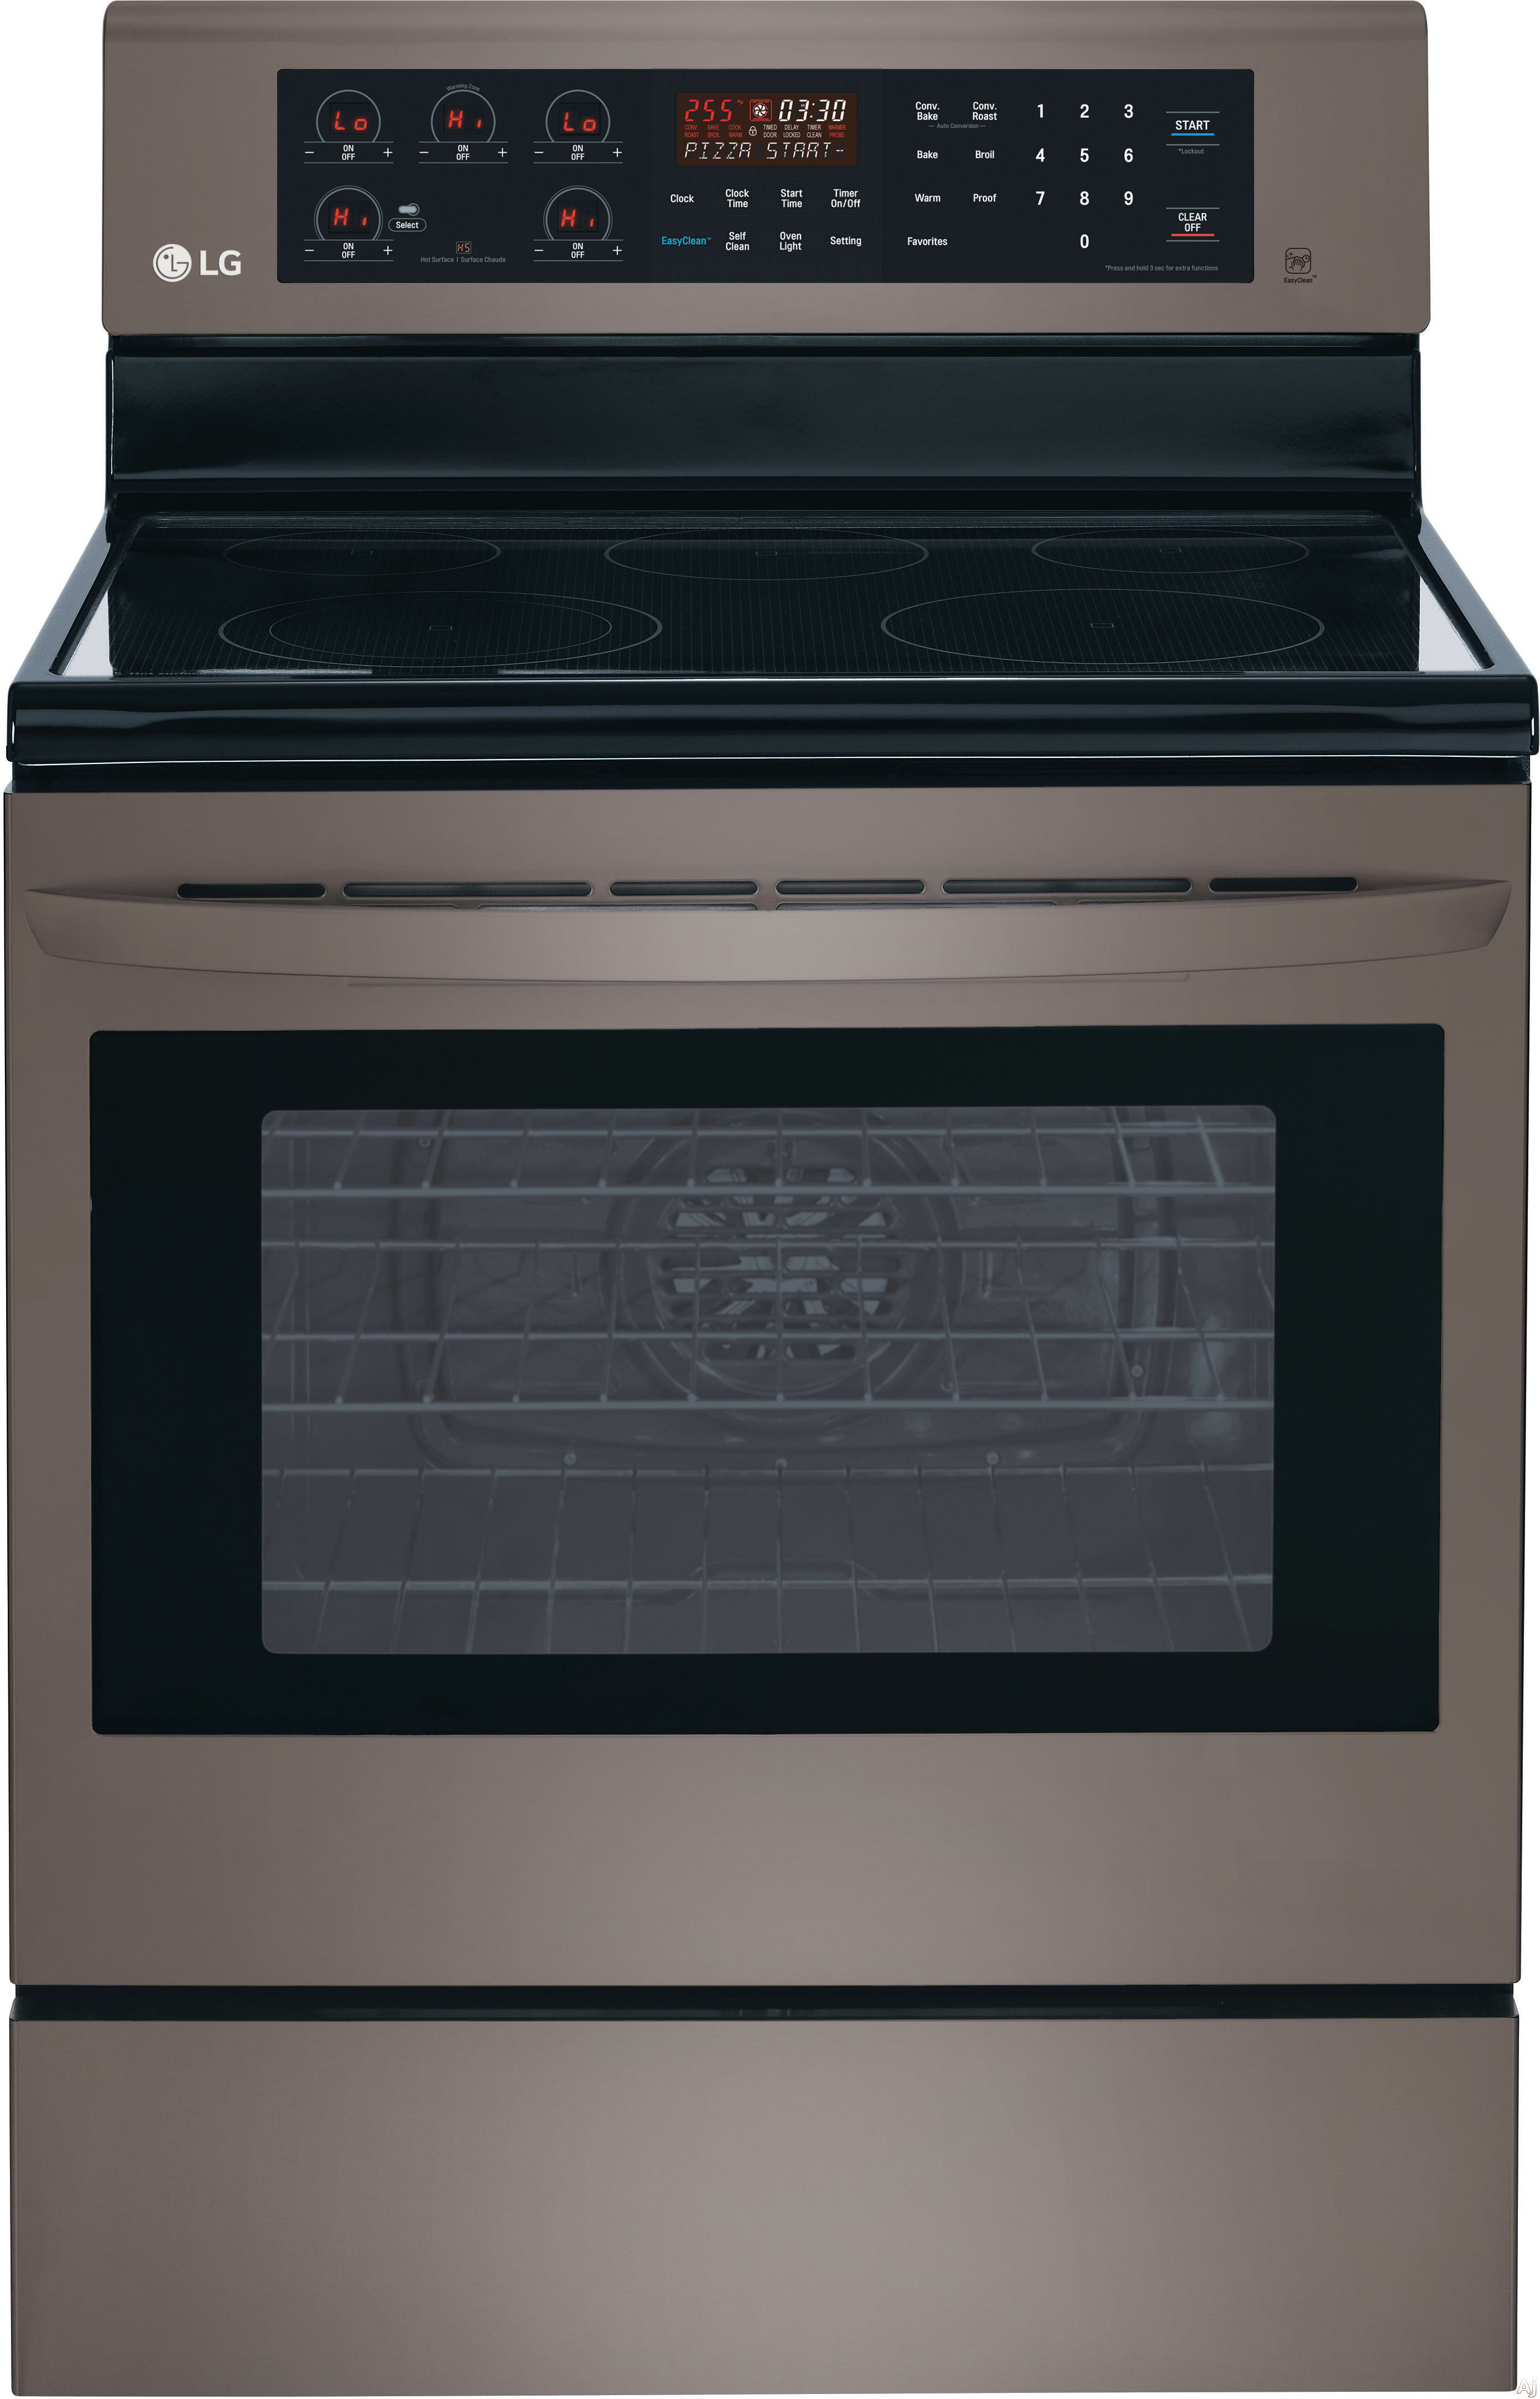 Lg Lre3083 30 Inch Electric Range With True Convection